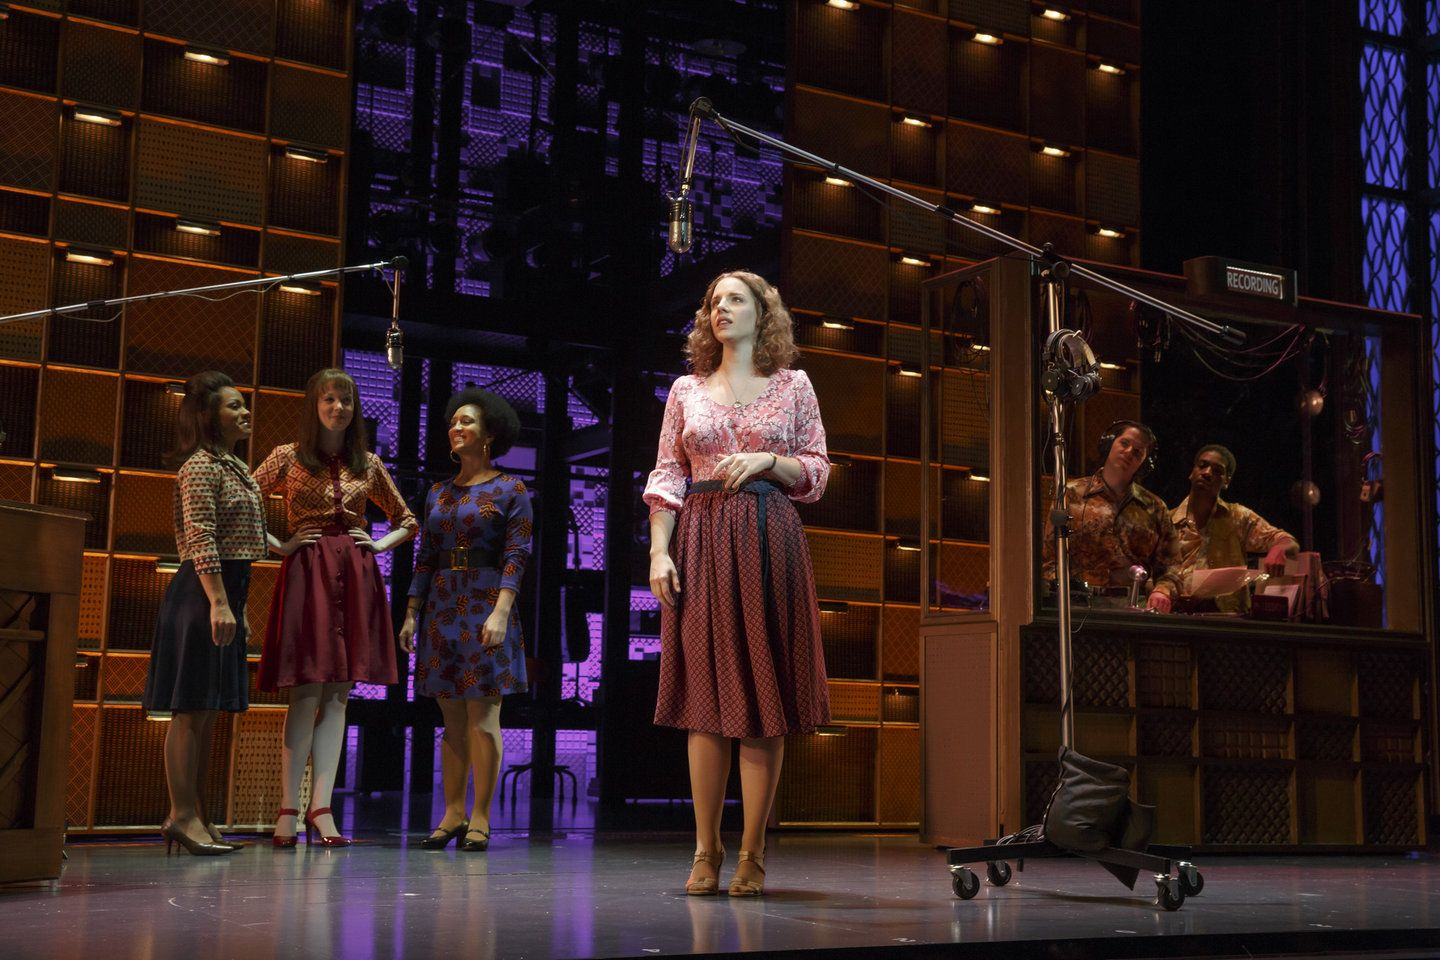 WIN: Lead actress, musical - Jessie Mueller; Sound design, musical | NOMINATED: Musical; Book of a musical - Douglas McGrath; Featured actor, musical - Jarrod Spector; Featured actress, musical - Anika Larsen; Orchestrations